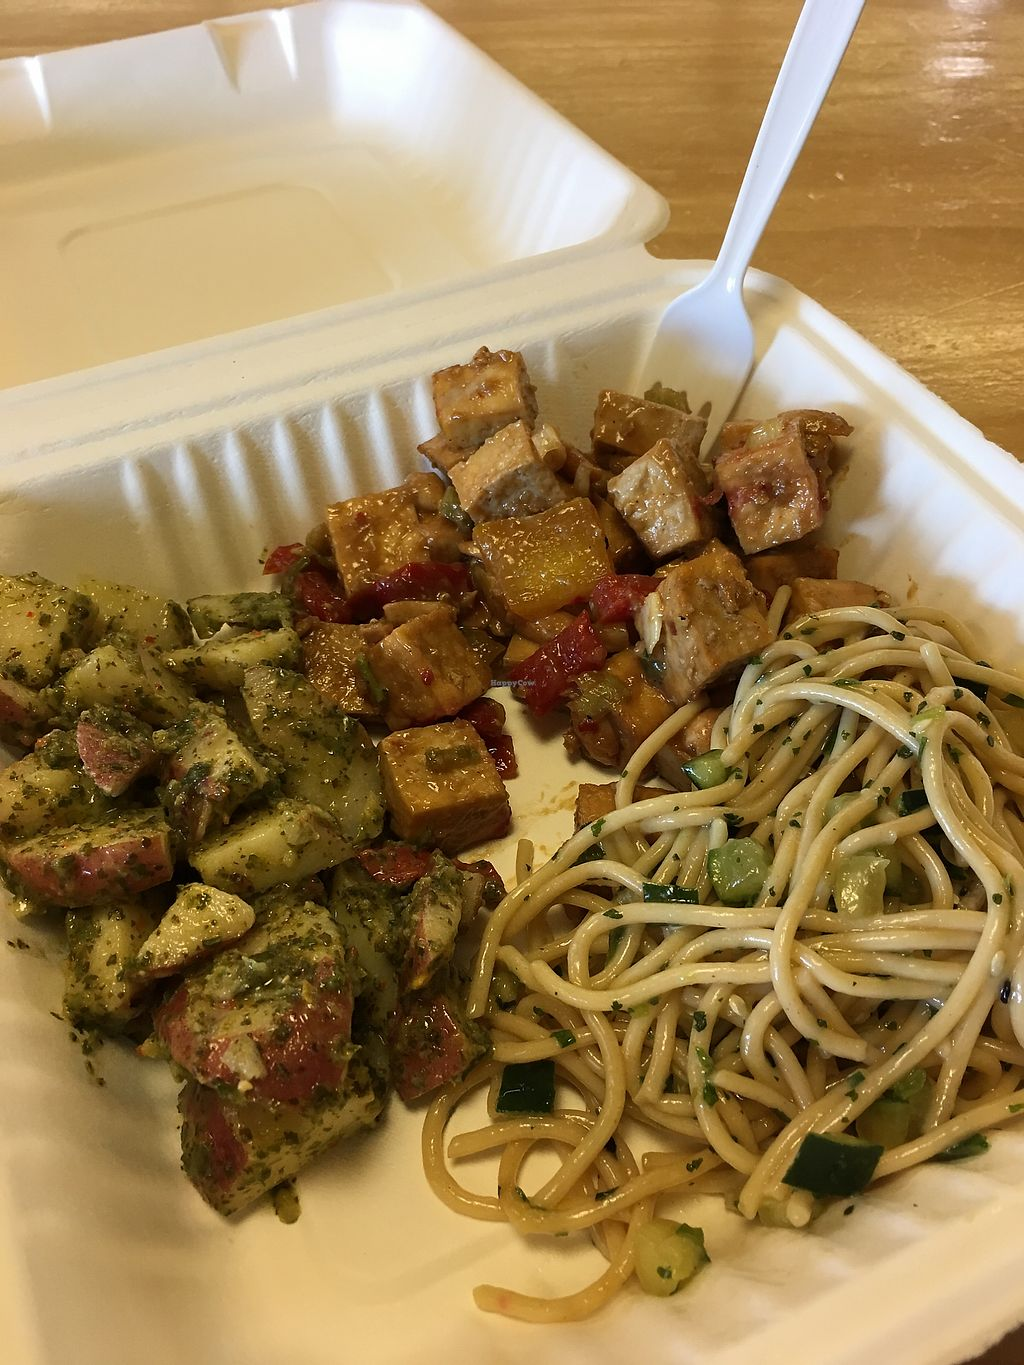 "Photo of Whole Foods Market - Indian School Plaza  by <a href=""/members/profile/s7345565"">s7345565</a> <br/>$8 meal deal - vegan kung pao tofu & vegan sides <br/> June 25, 2017  - <a href='/contact/abuse/image/2246/273395'>Report</a>"